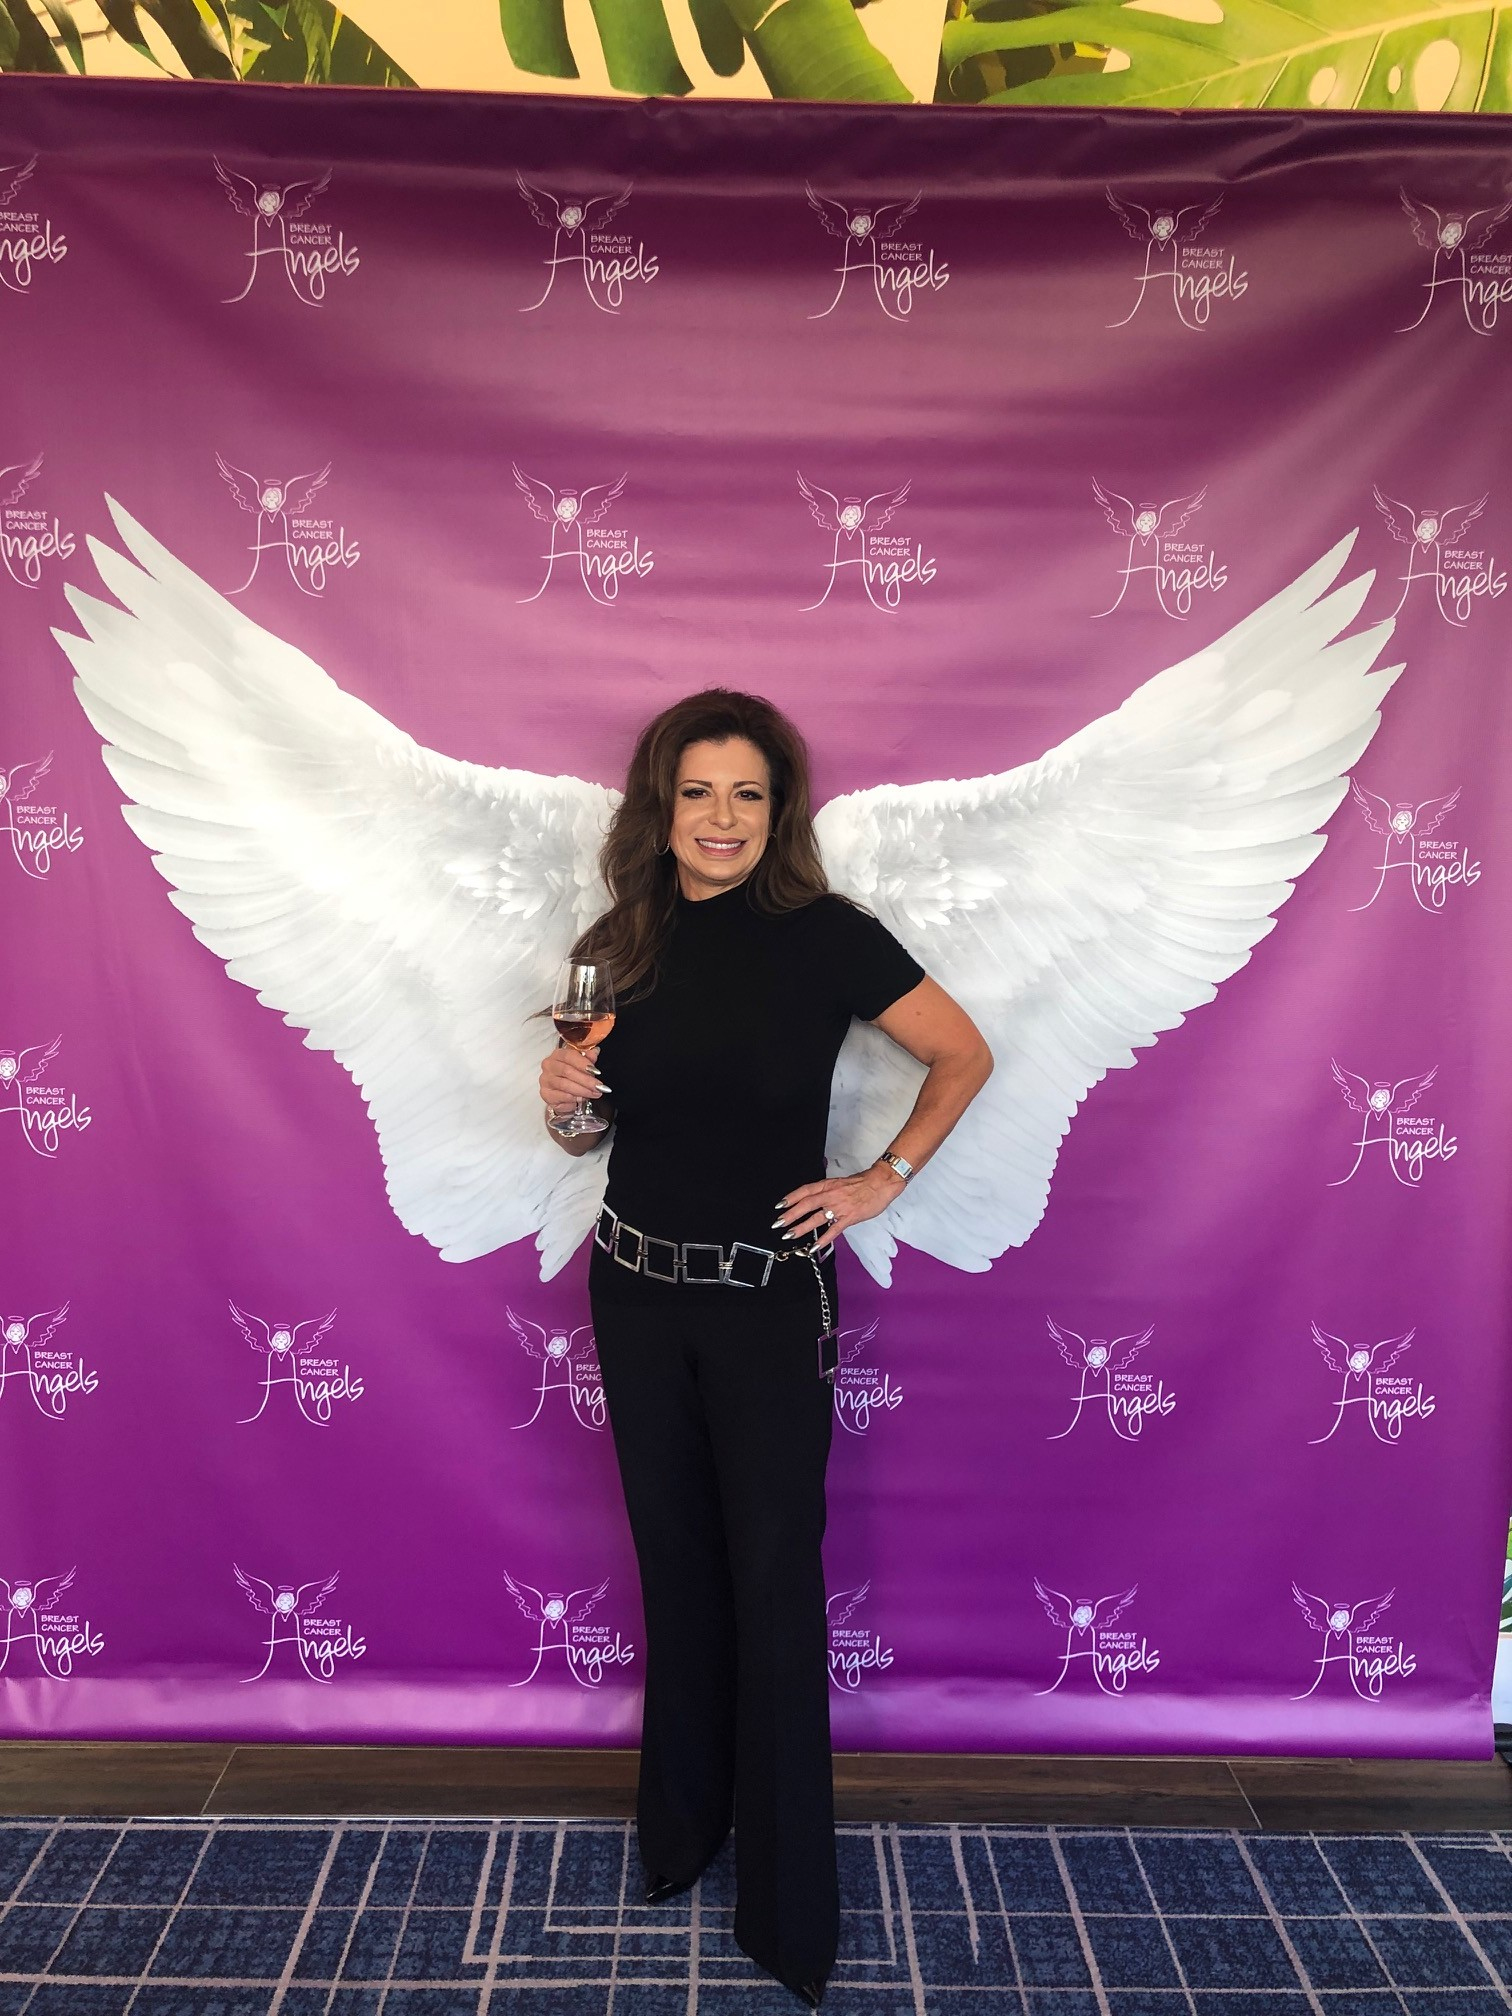 Breast Cancer Angels raises 100K at holiday event